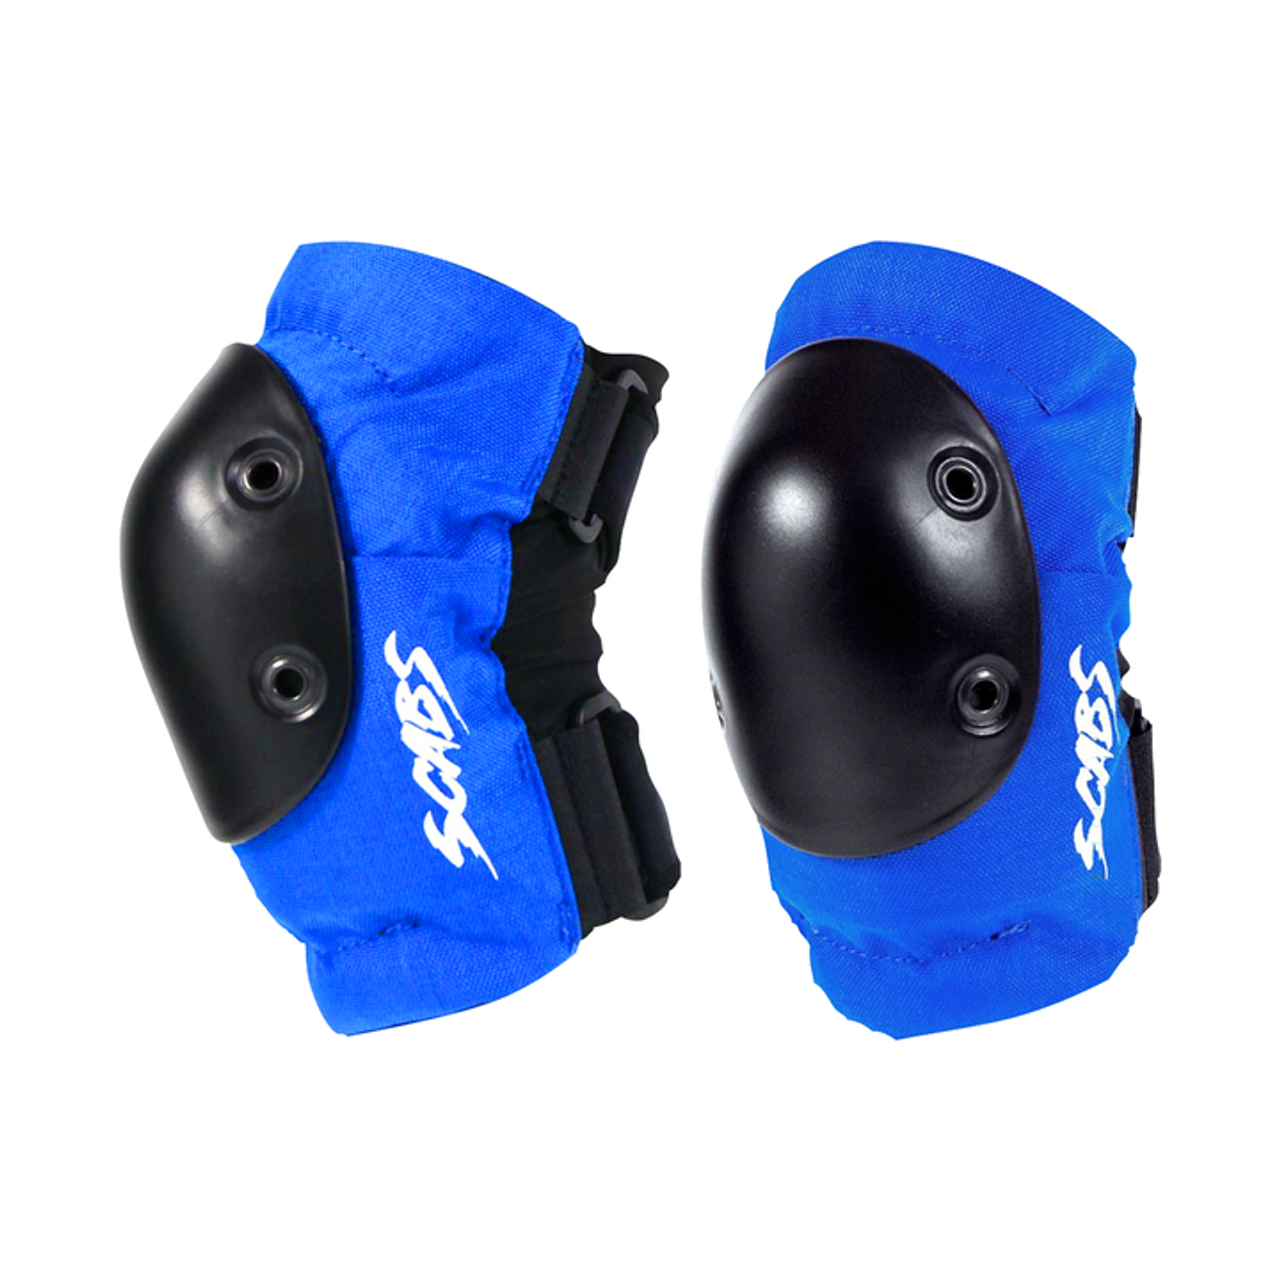 X-Small Smith Safety Gear Scabs Elite Knee Pads